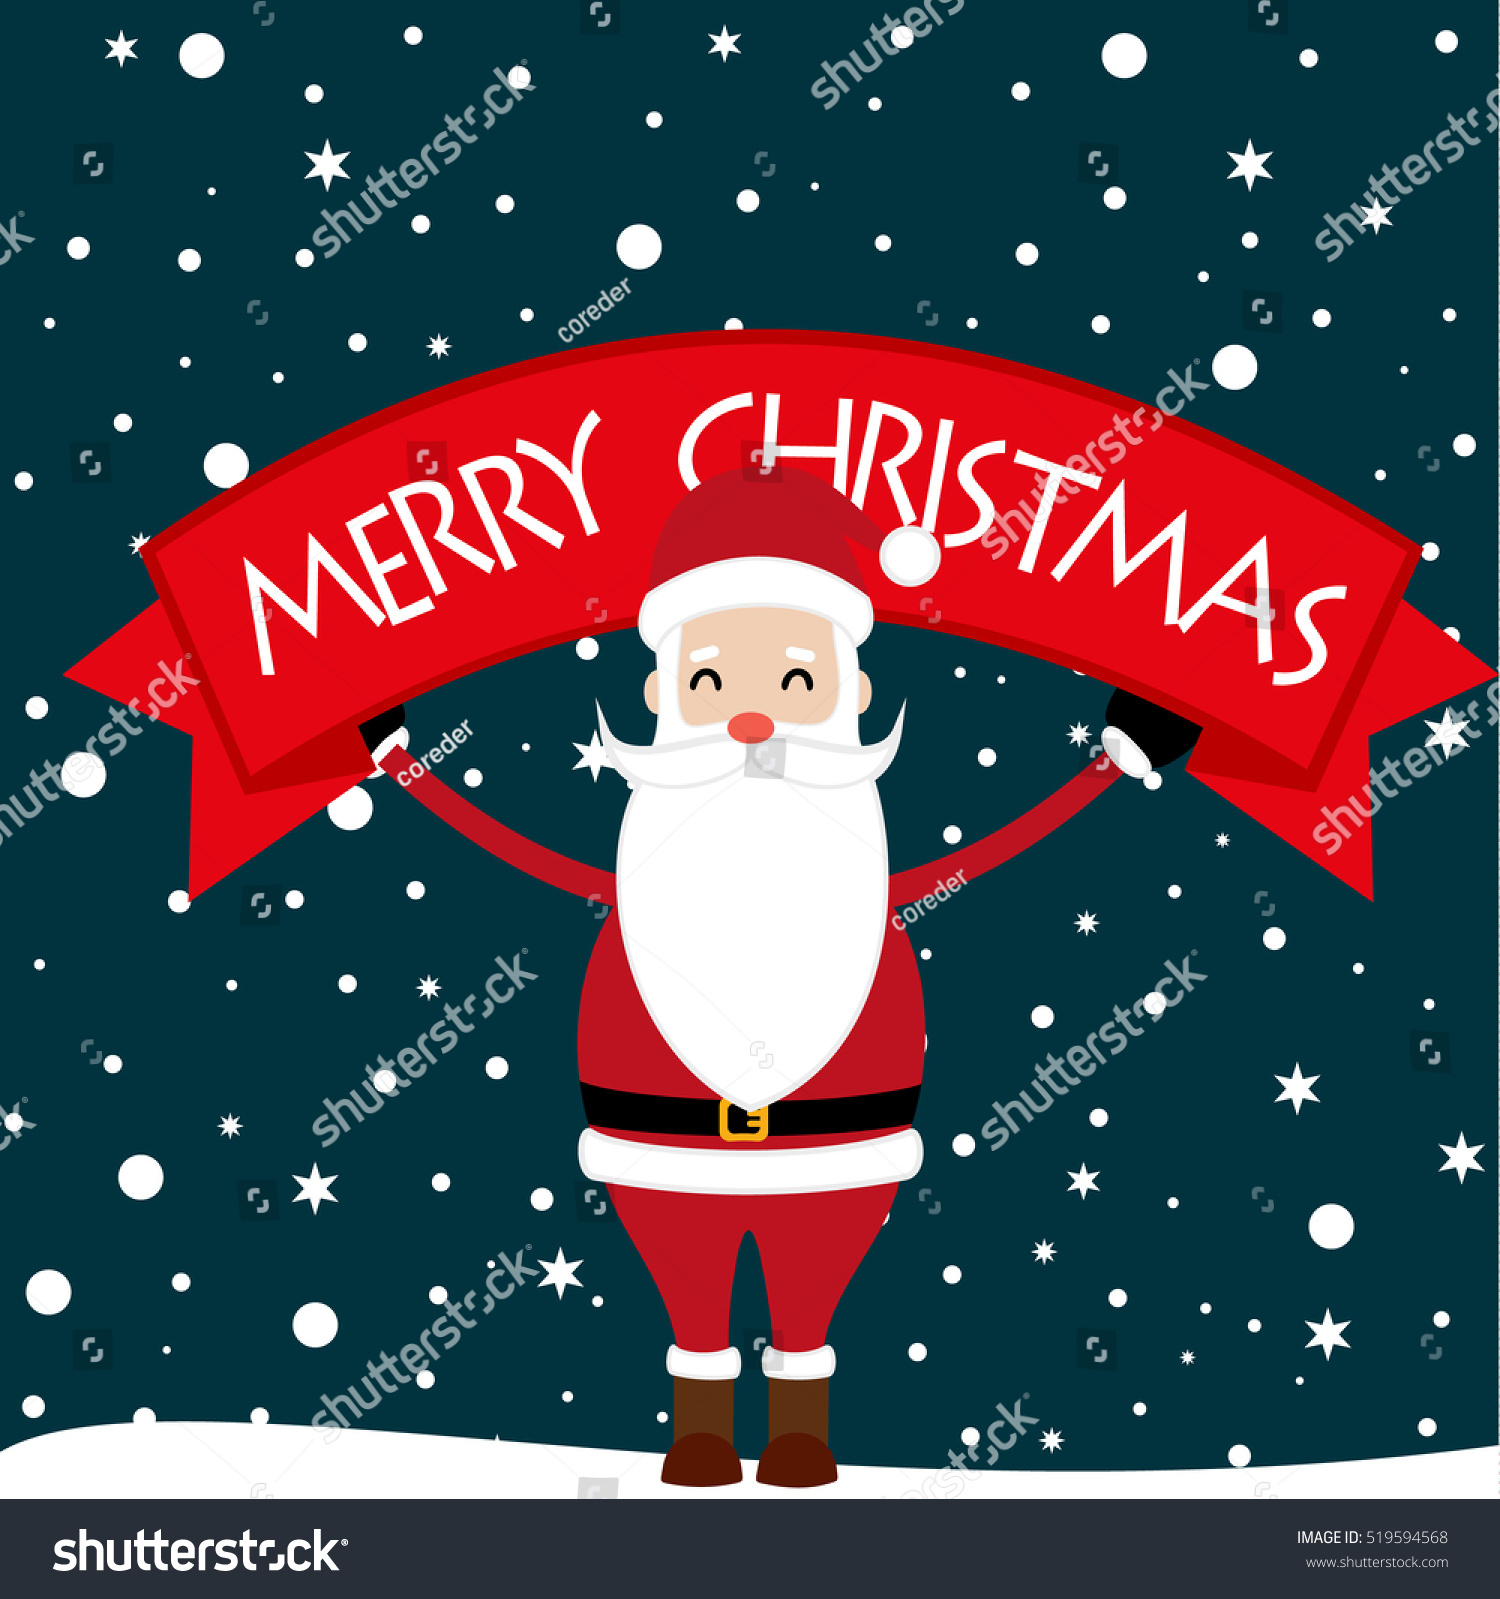 merry christmas and happy new yearhappy new year card2017santa claus